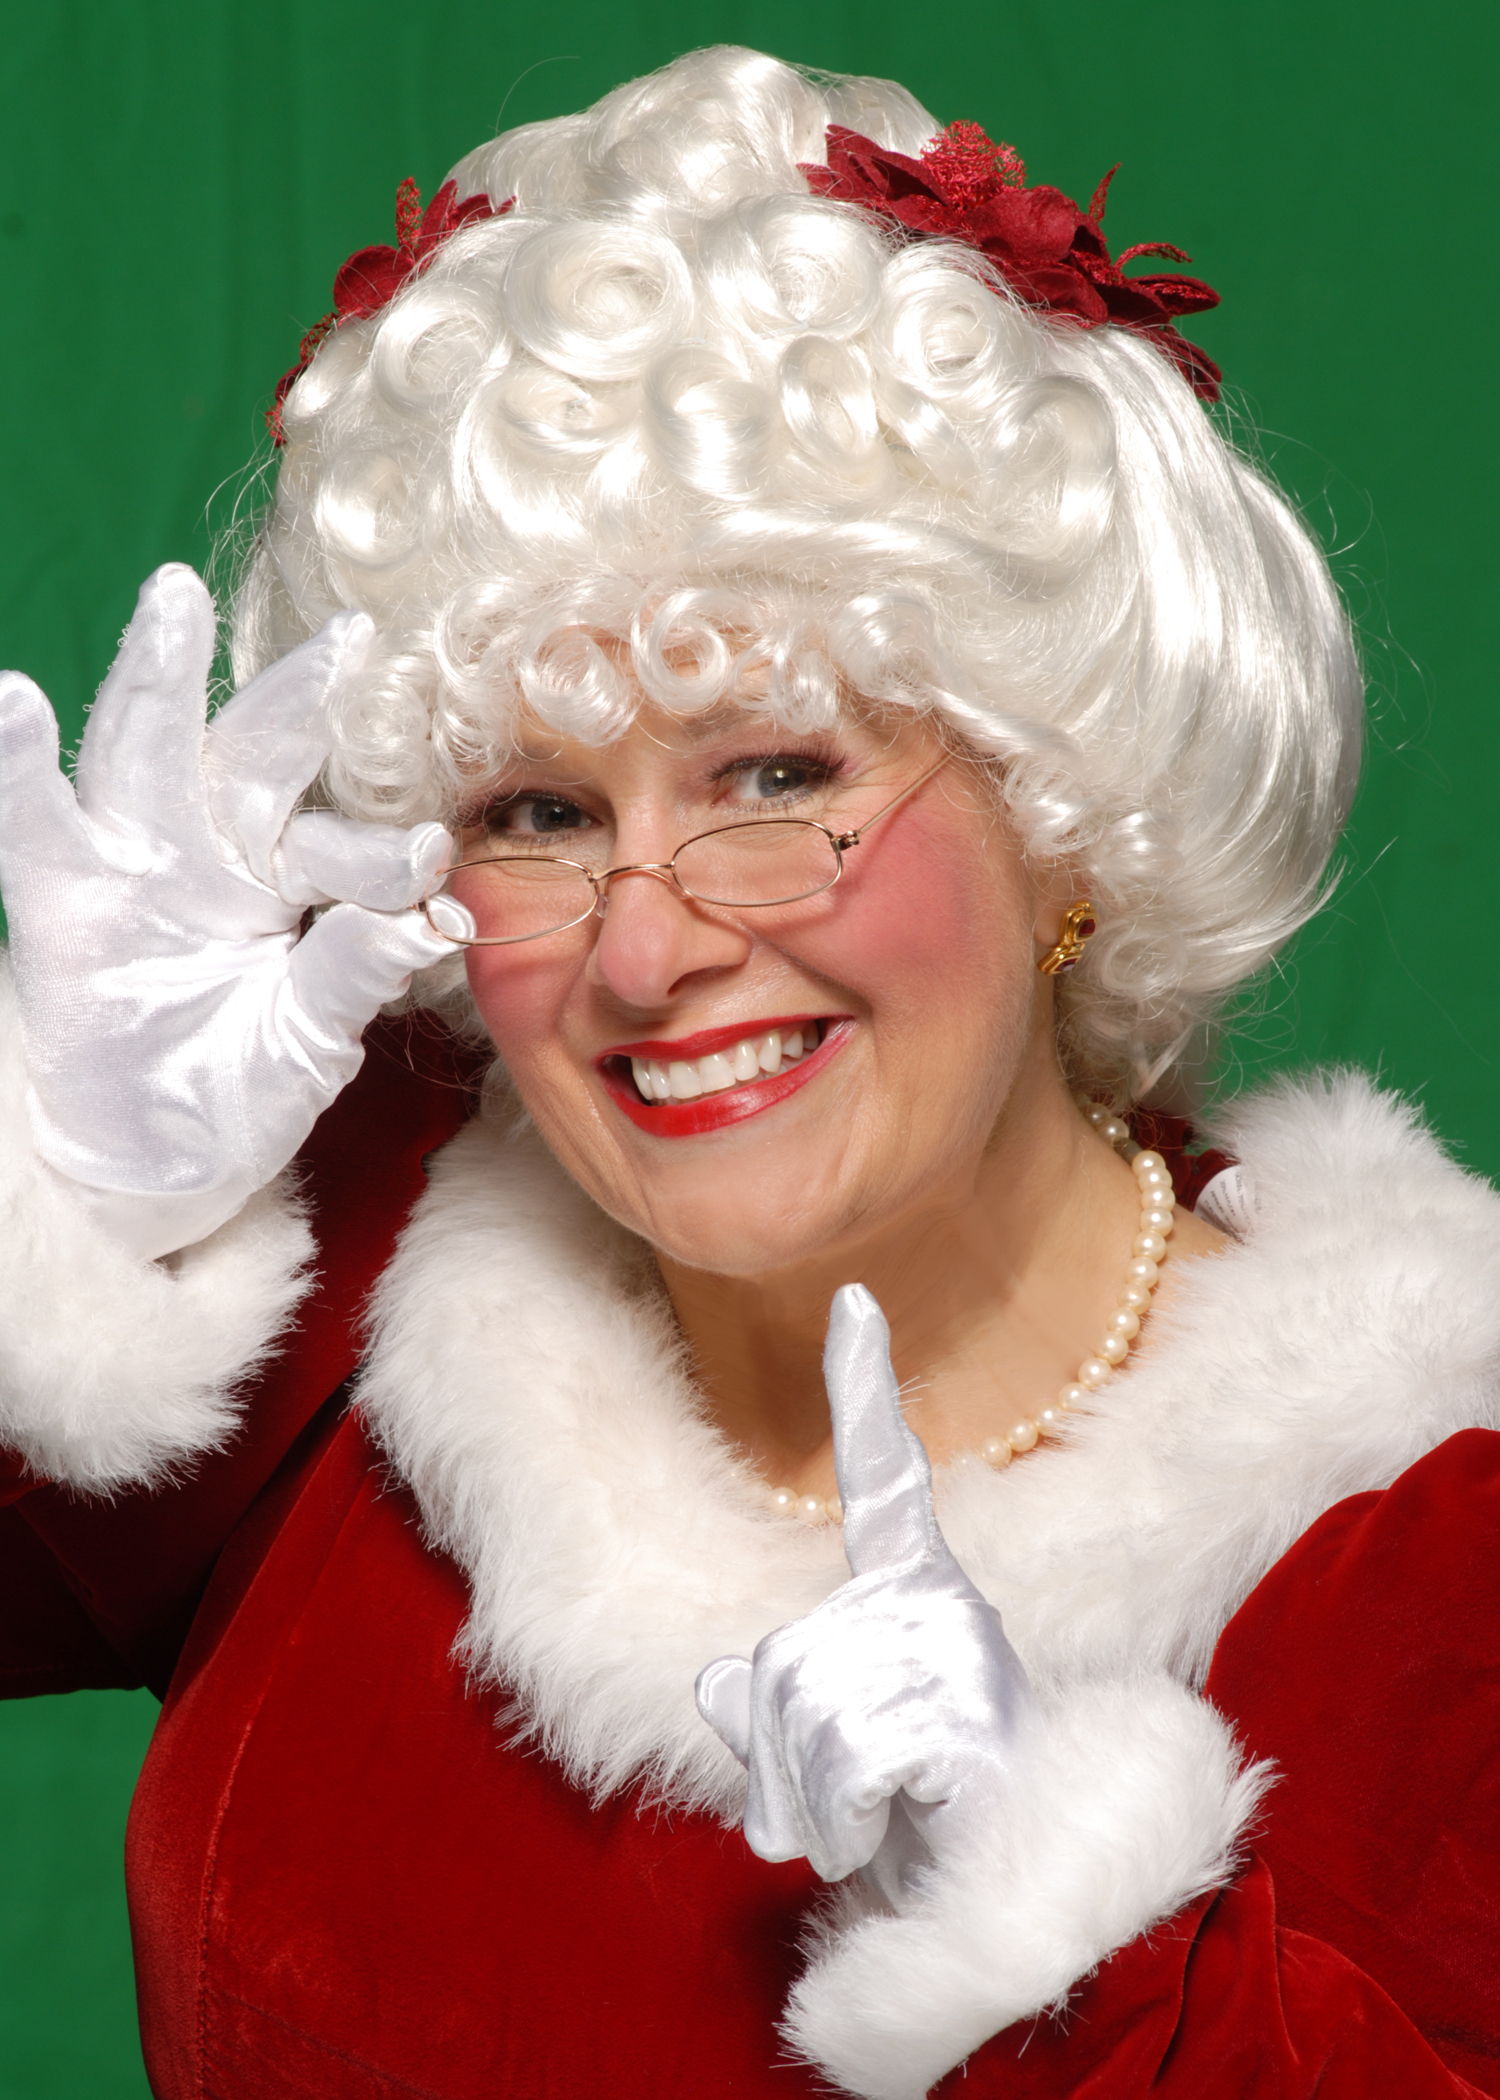 Well-liked Story Time with Mrs. Claus | Southlake Tourism, TX - Official Website NL15